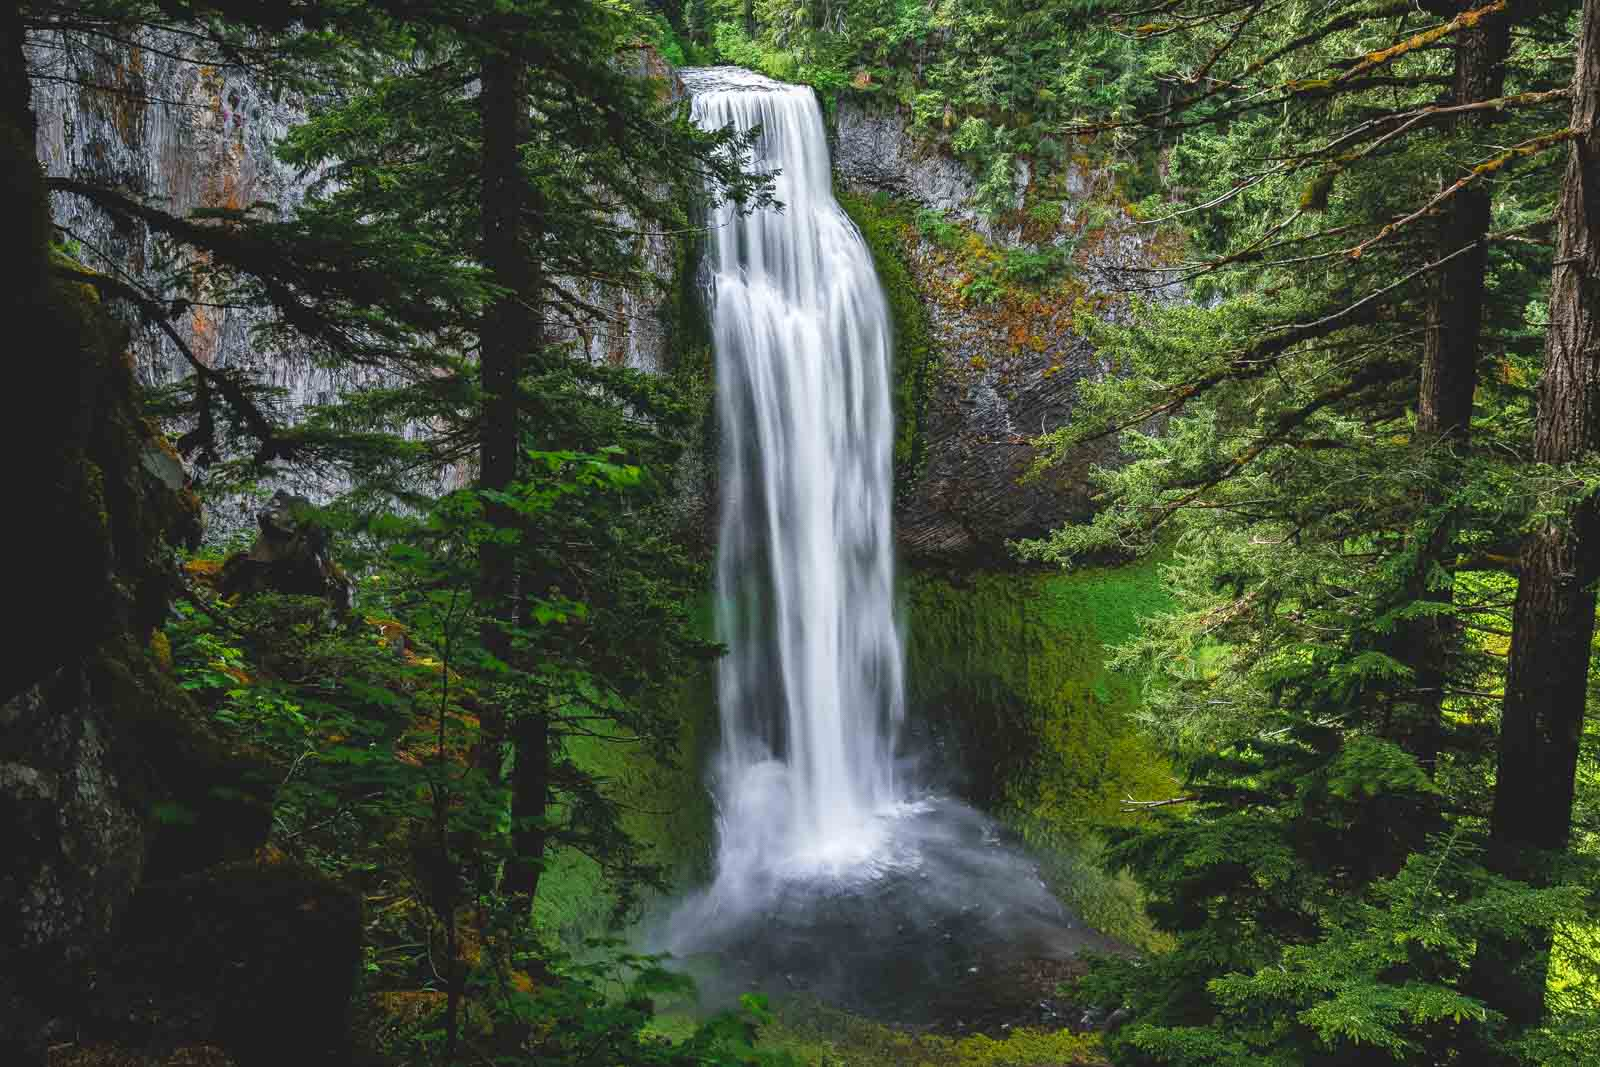 If you're looking for impressive waterfalls in Oregon, you won't be disappointed by Salt Creek Falls.